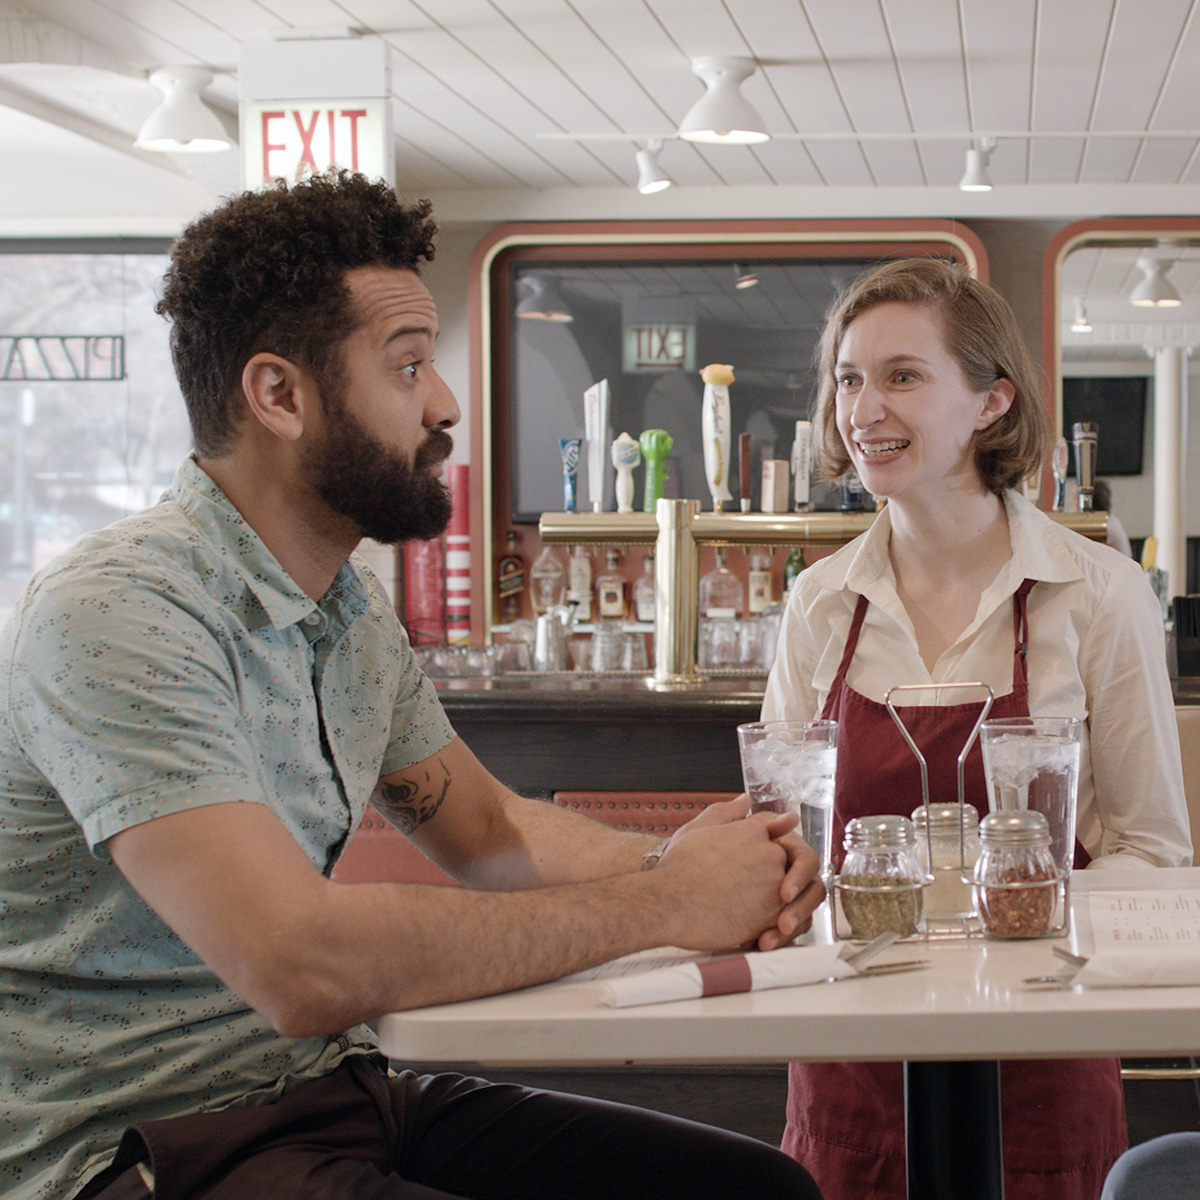 Restaurant Stories: Easy Choices